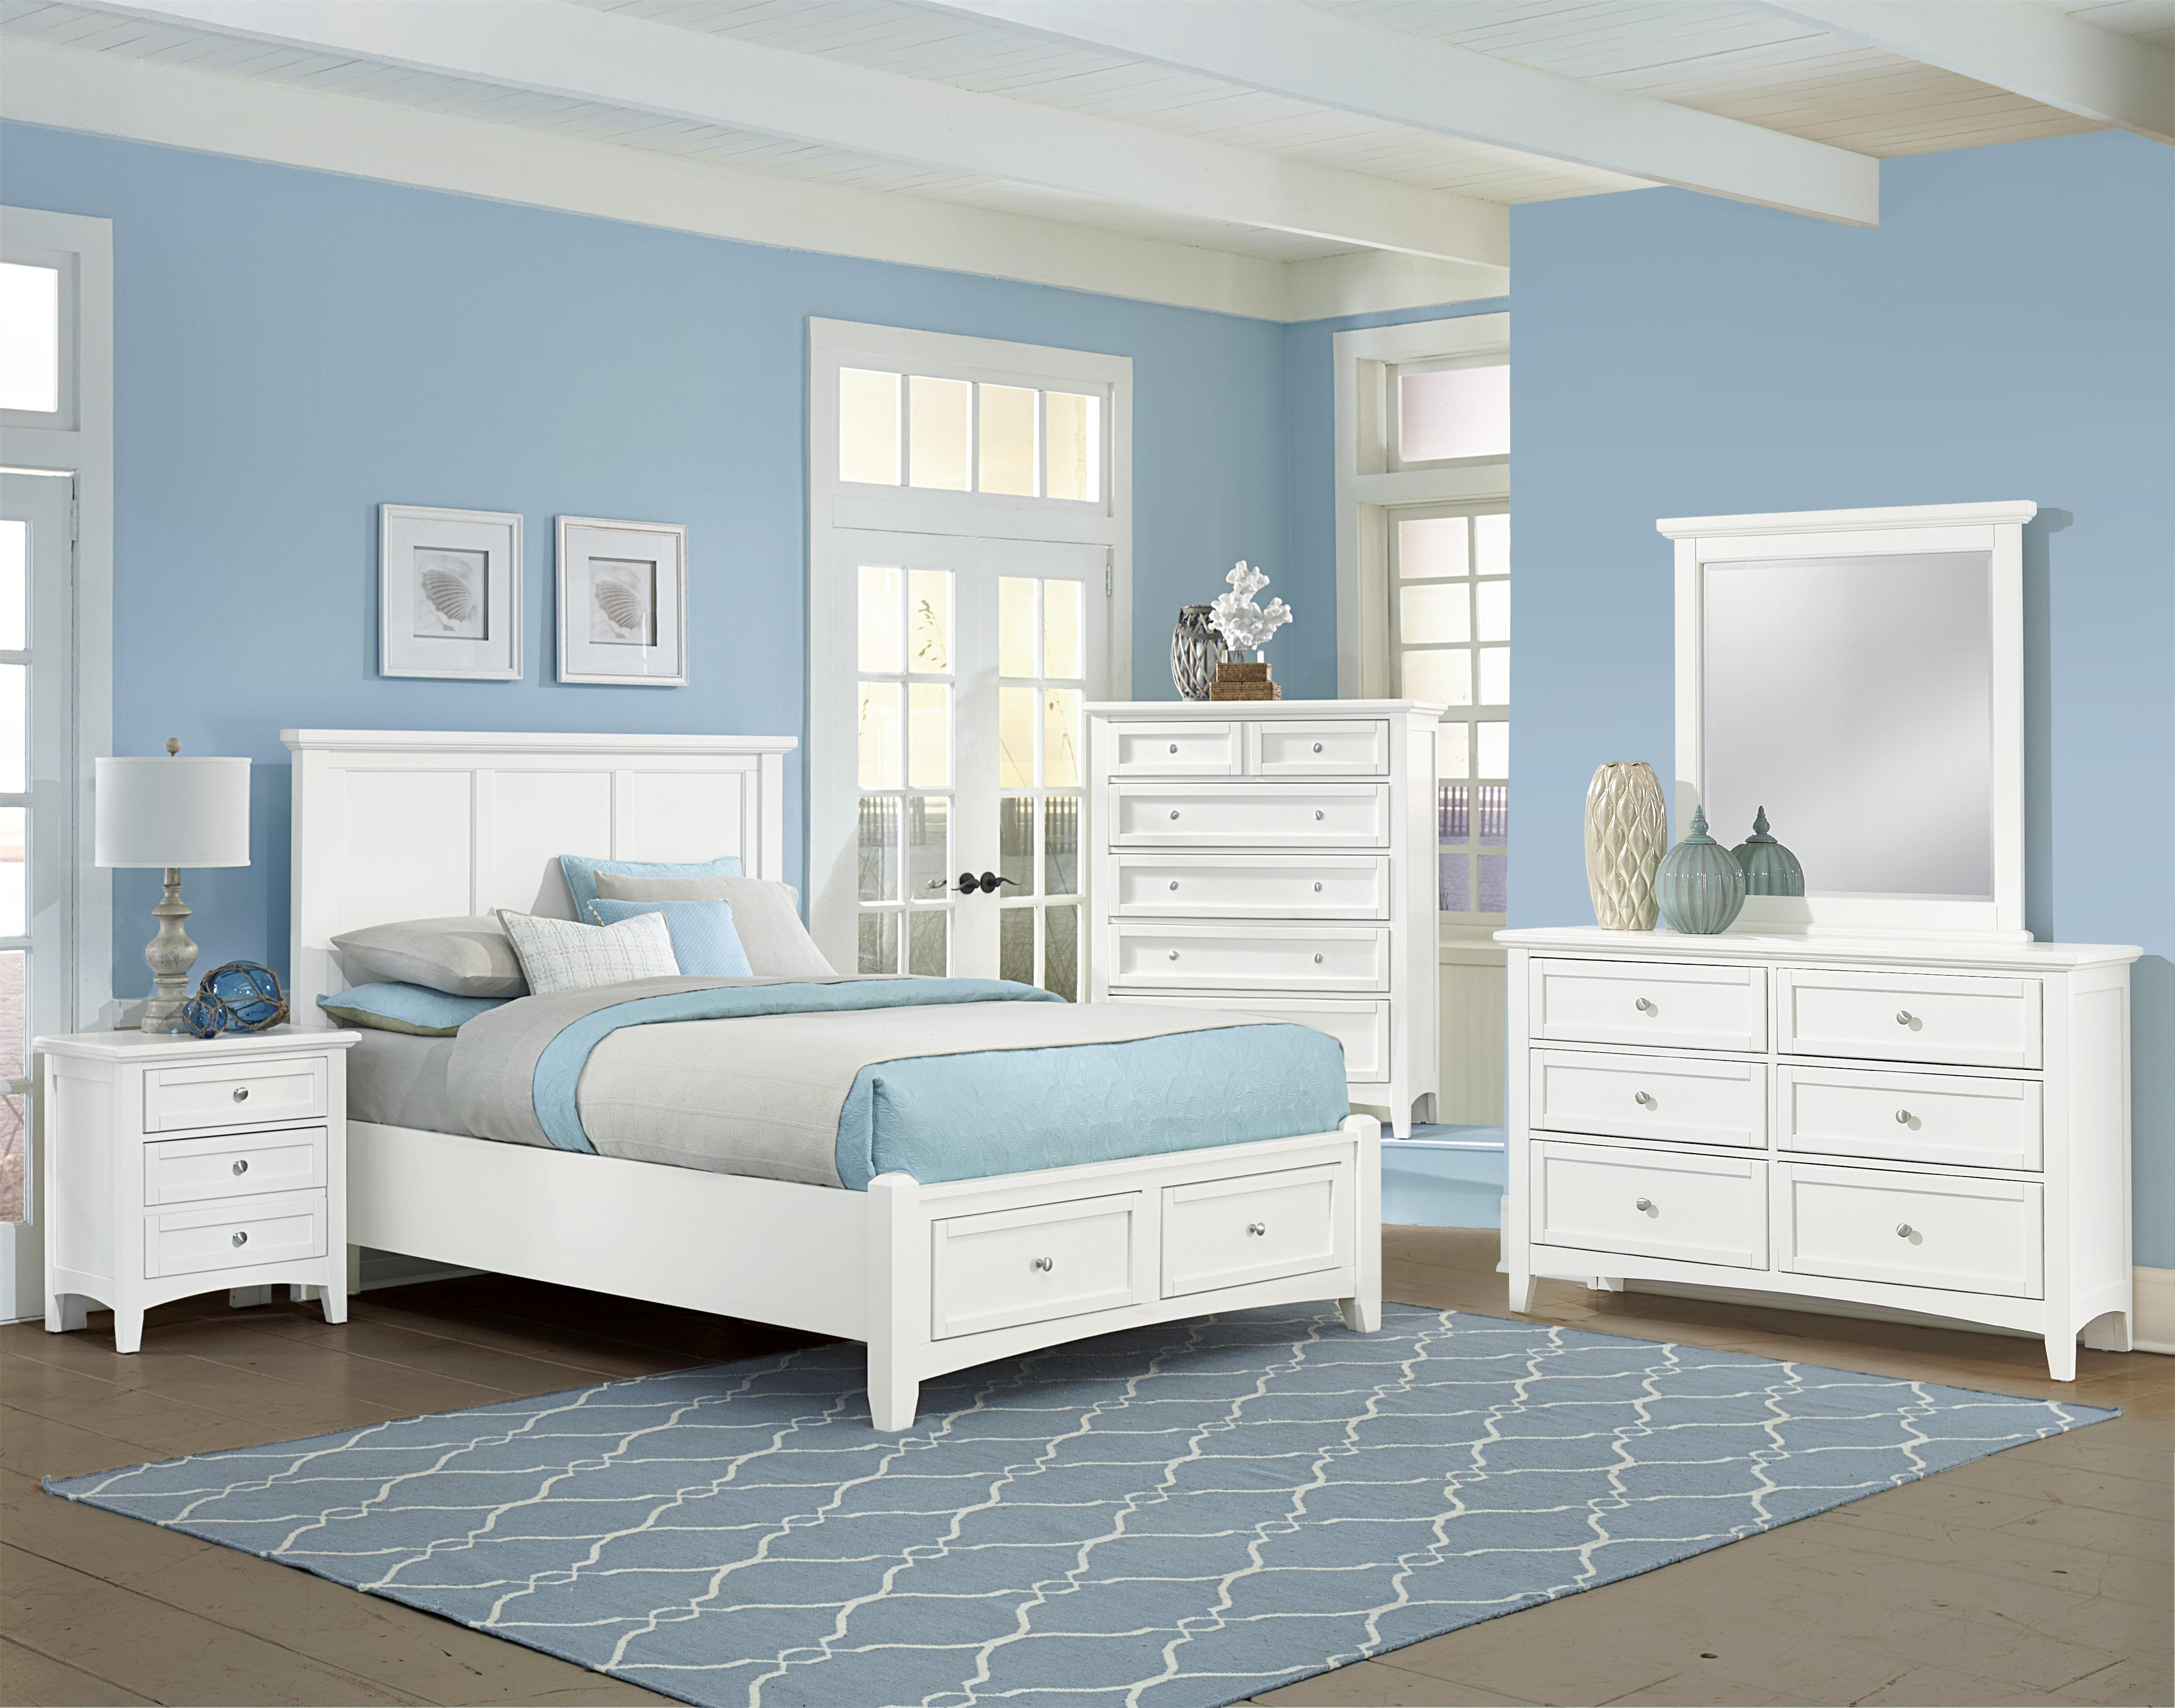 Bonanza Queen Bedroom Group by Vaughan Bassett at Steger's Furniture